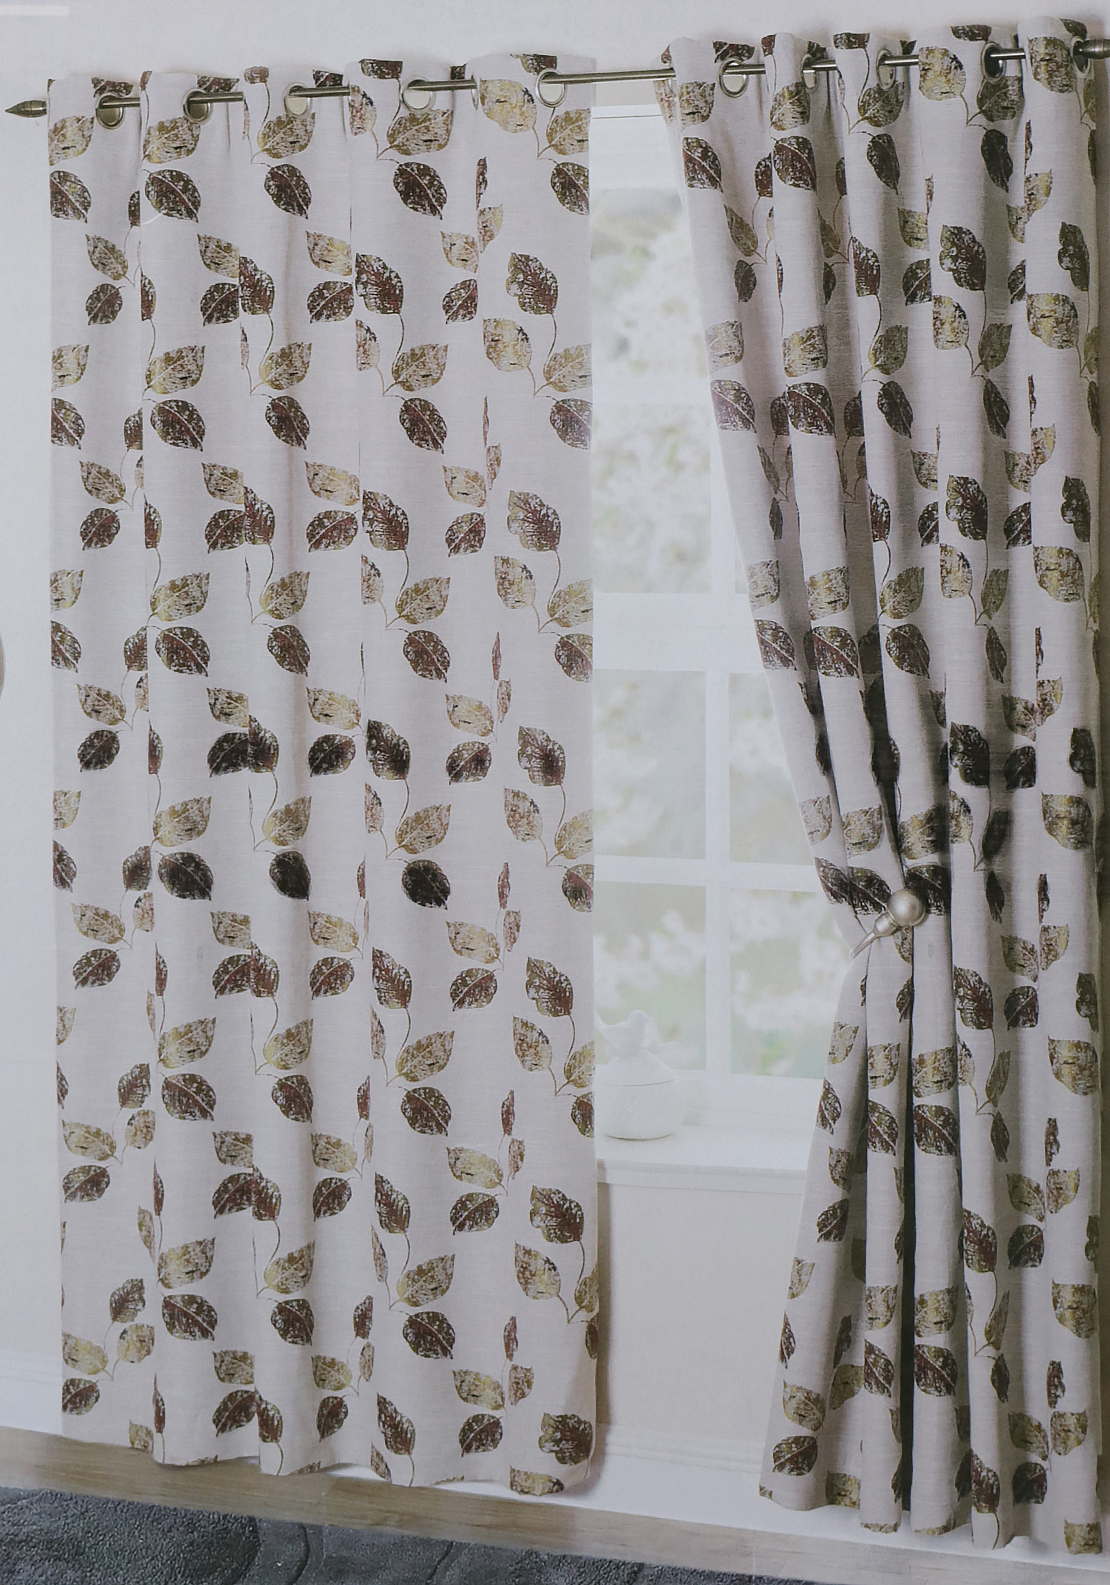 "Ea Design Levante Leaf Print Fully Lined Eyelet Curtains 90 x 90"", Beige and Bordeaux"